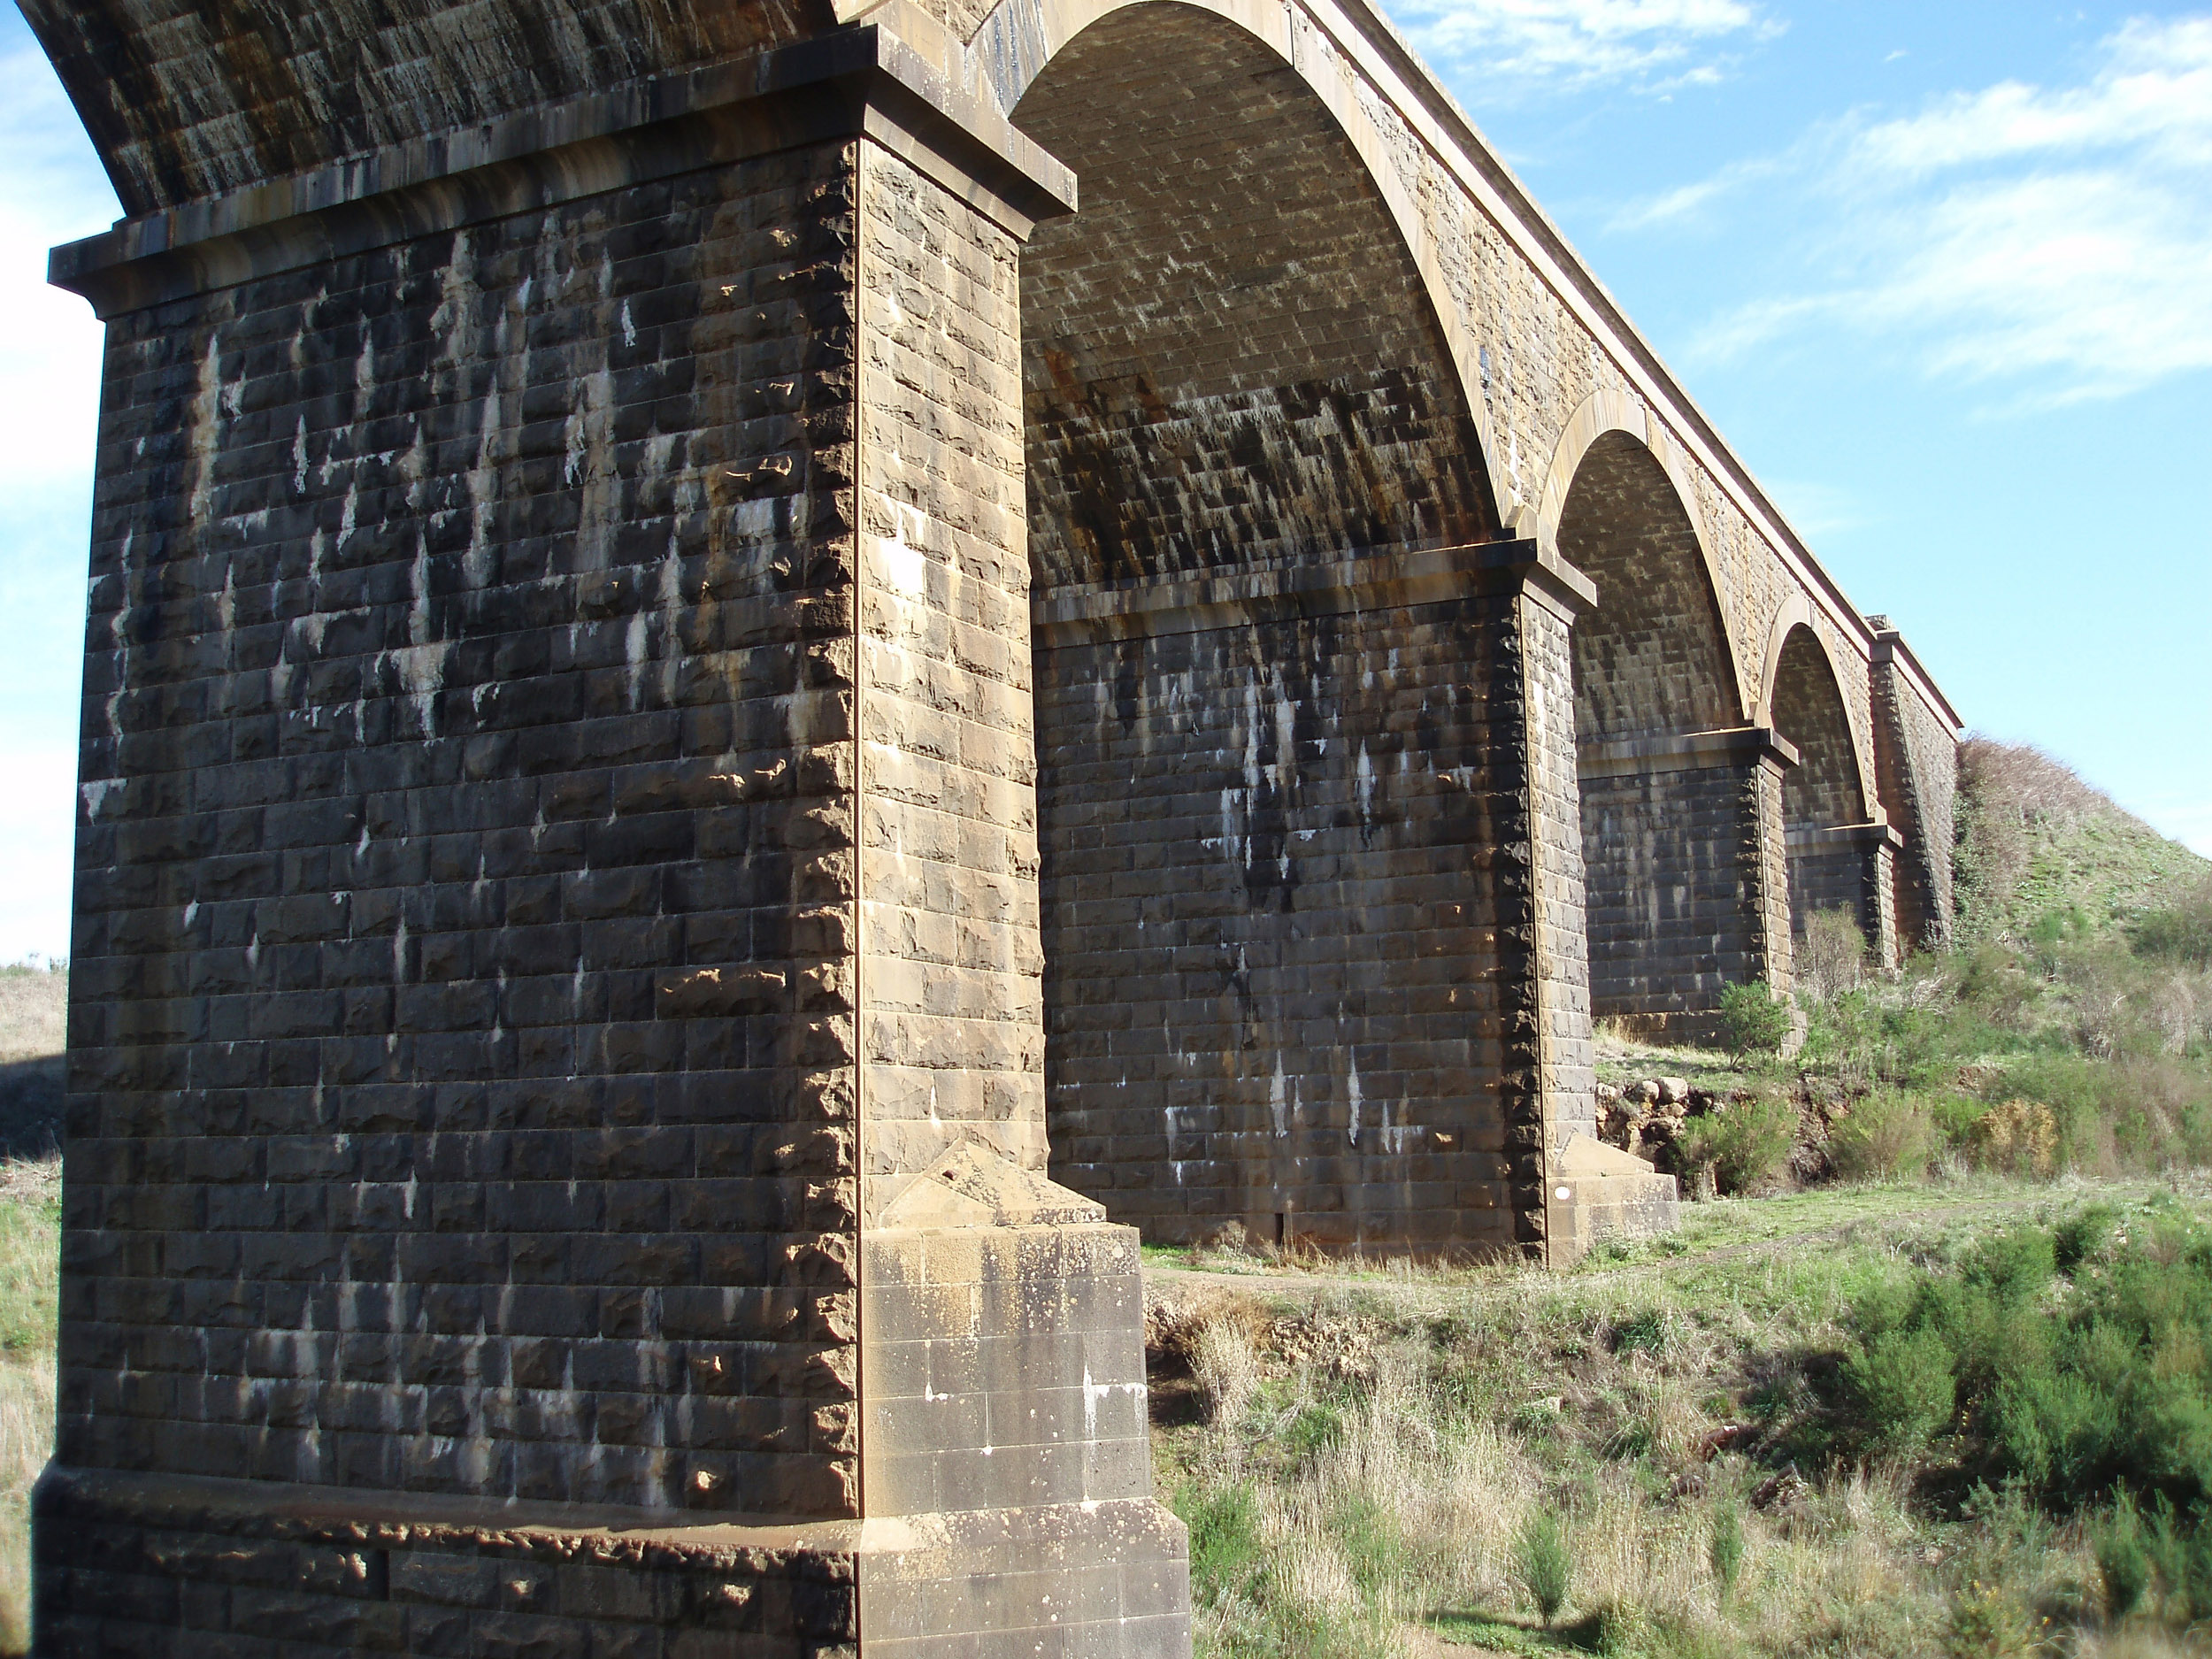 low angle view of a stone arch railway viaduct